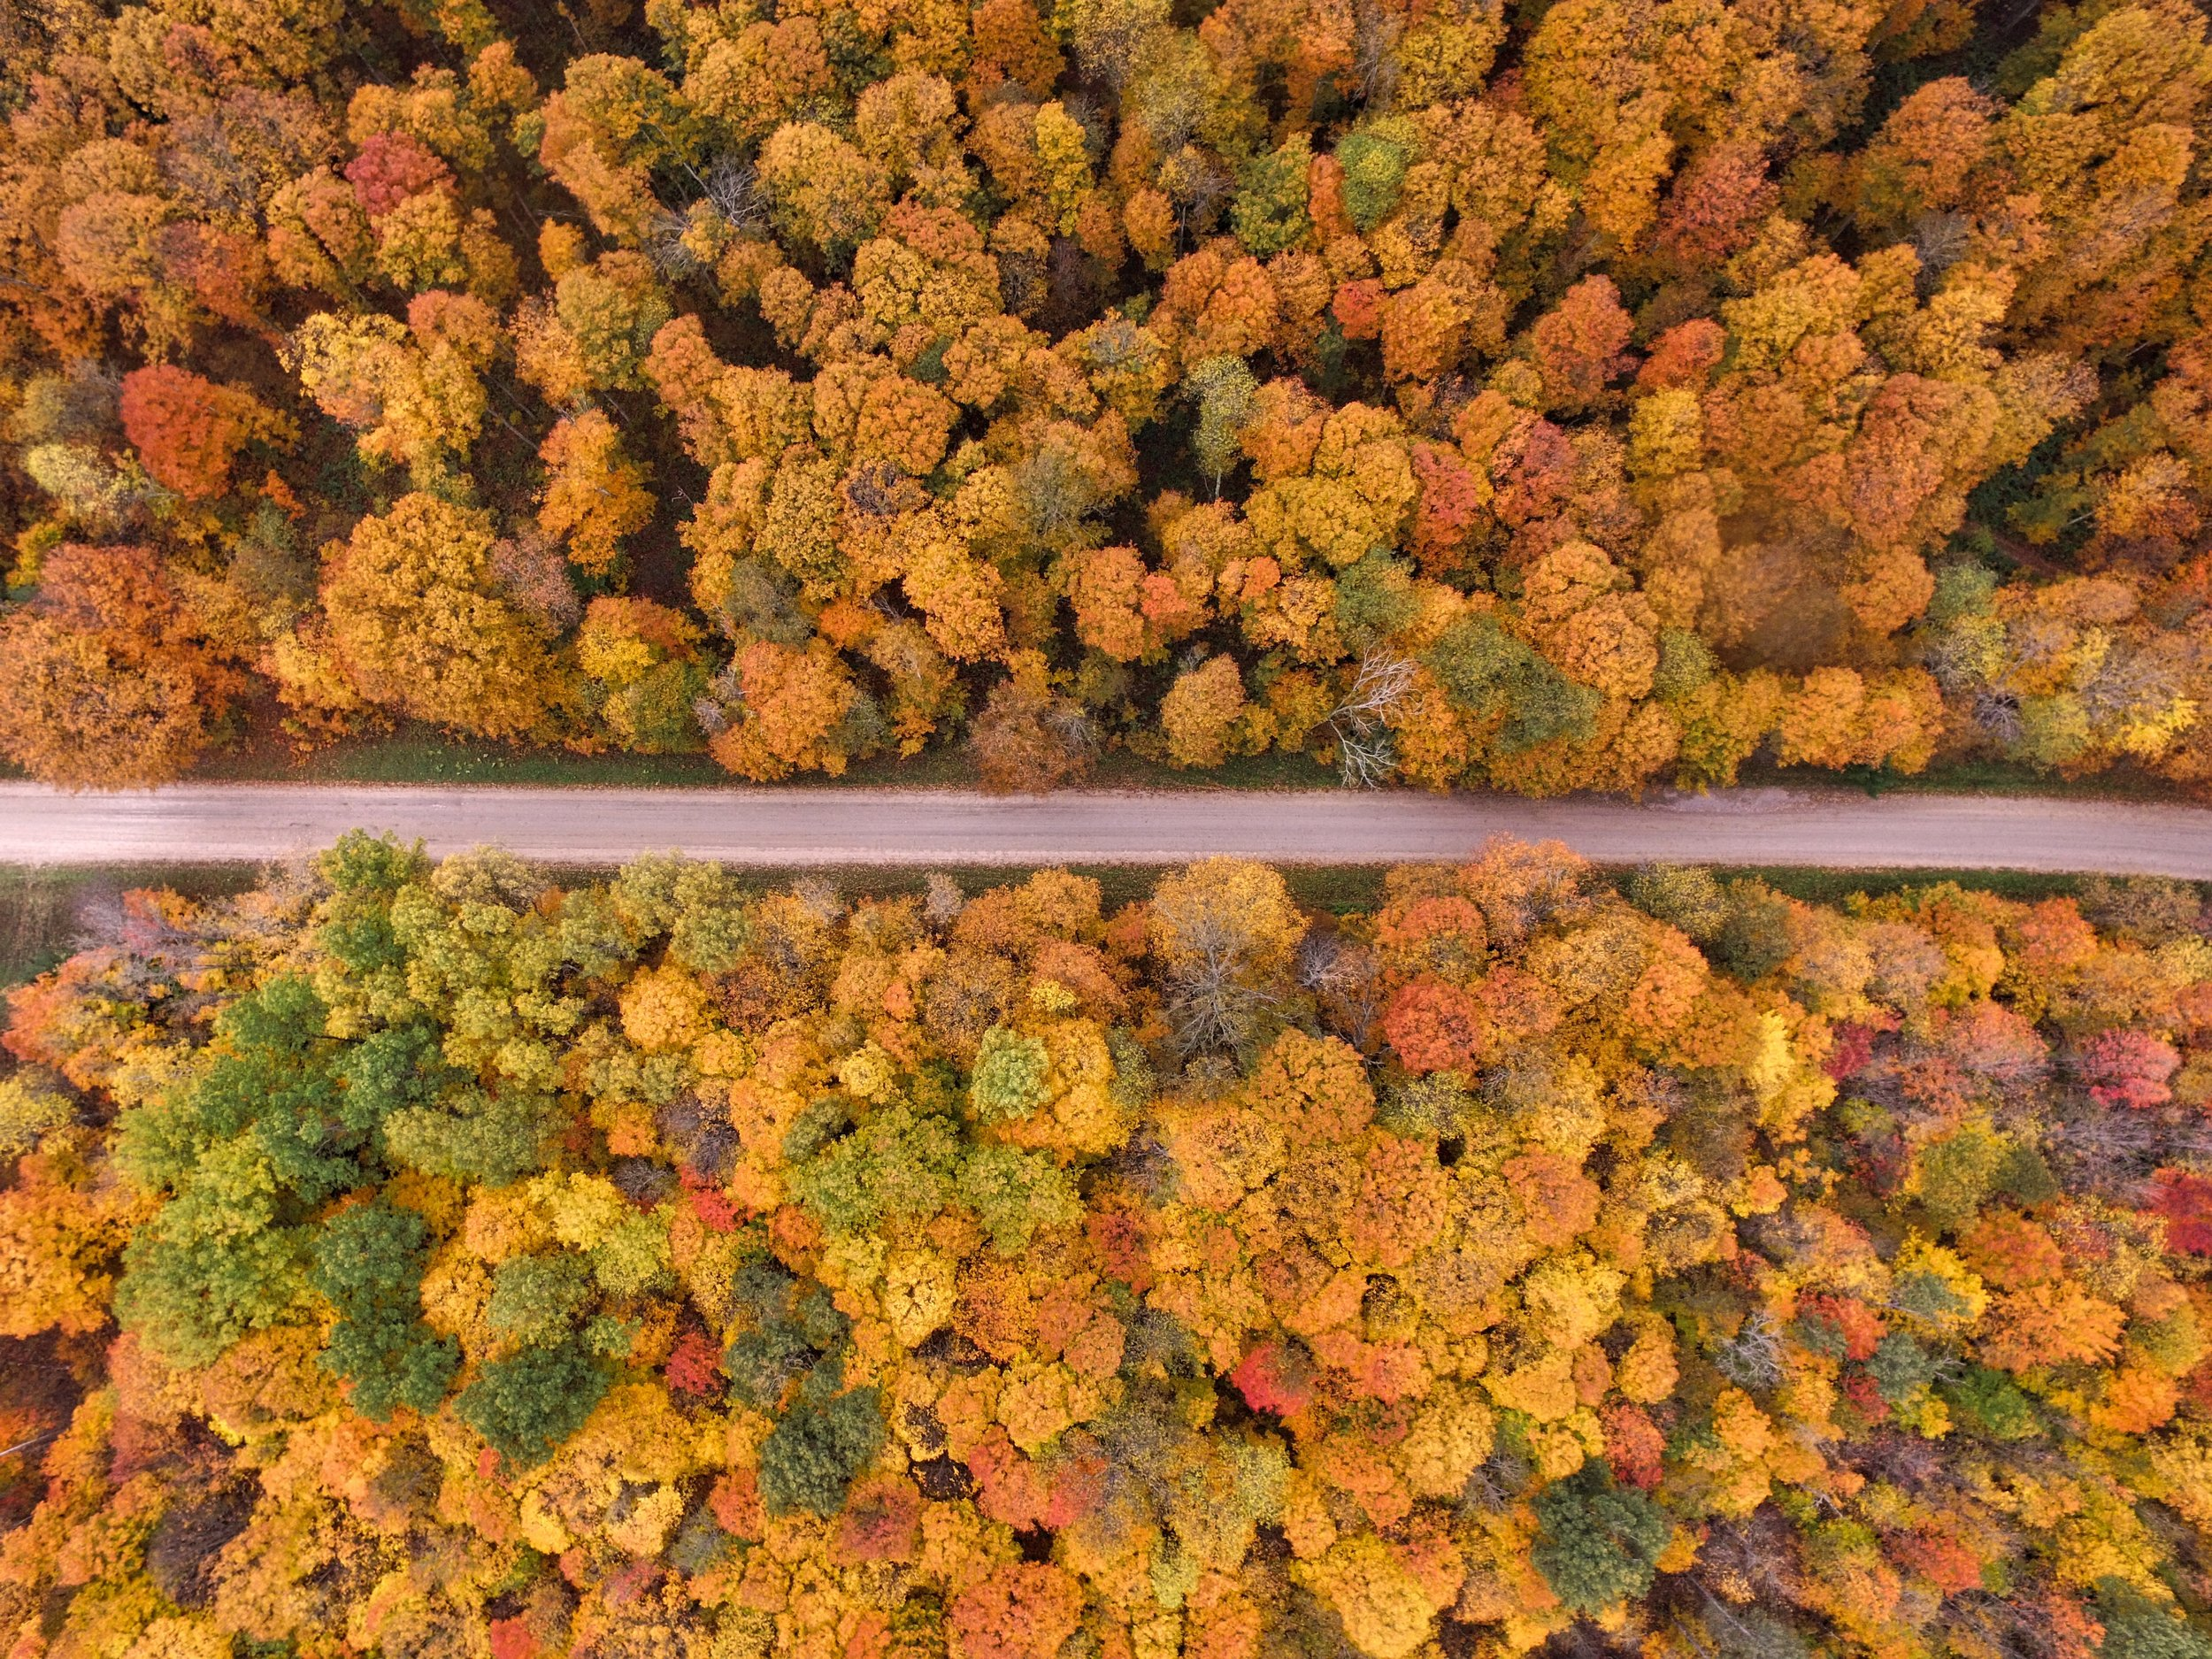 AUTUMN - UNSPLASH COLLECTION